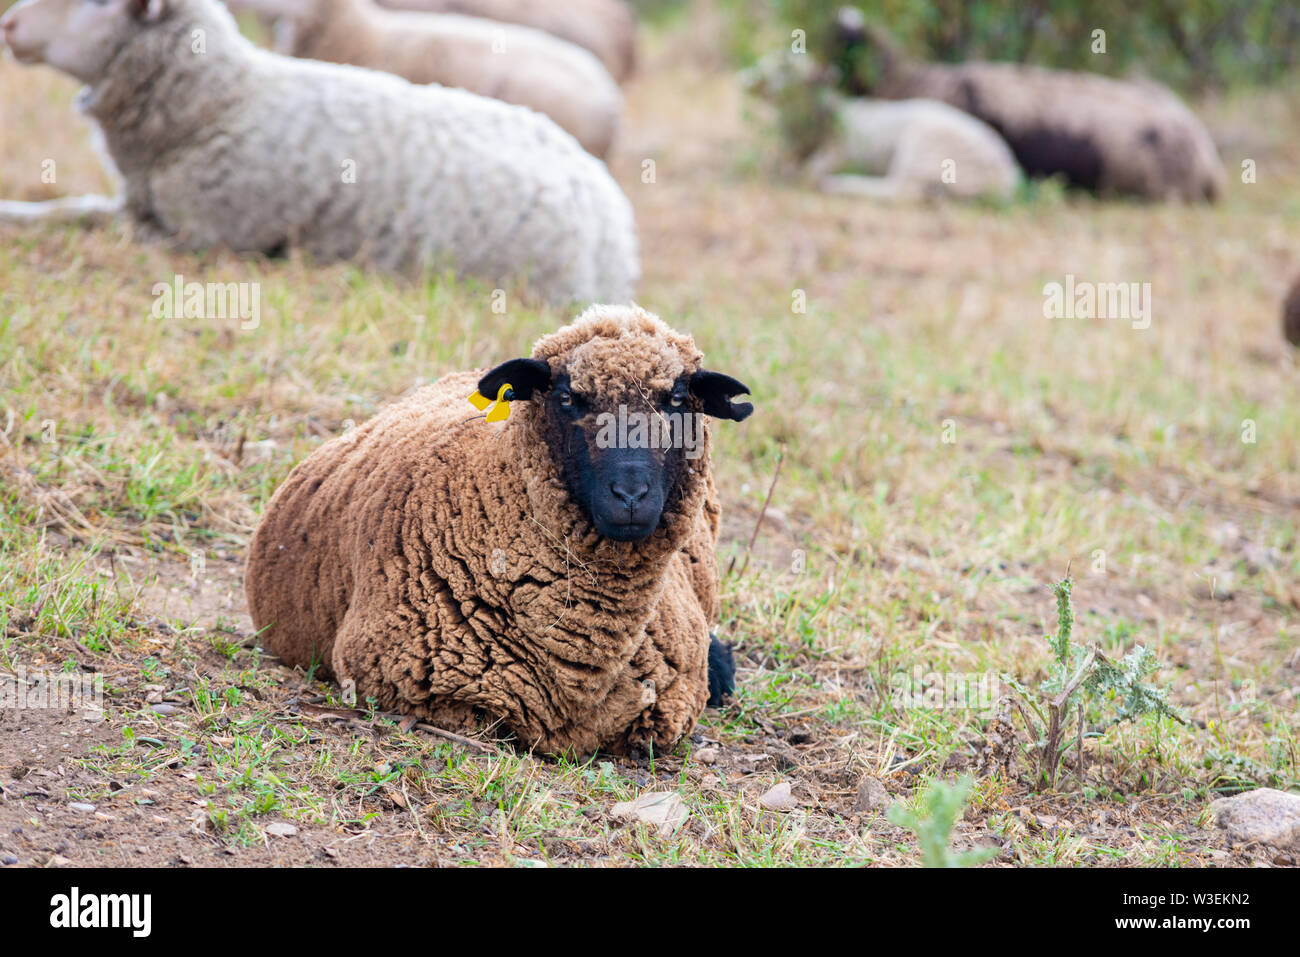 a black sheep resting in the field and looking at camera - Stock Image